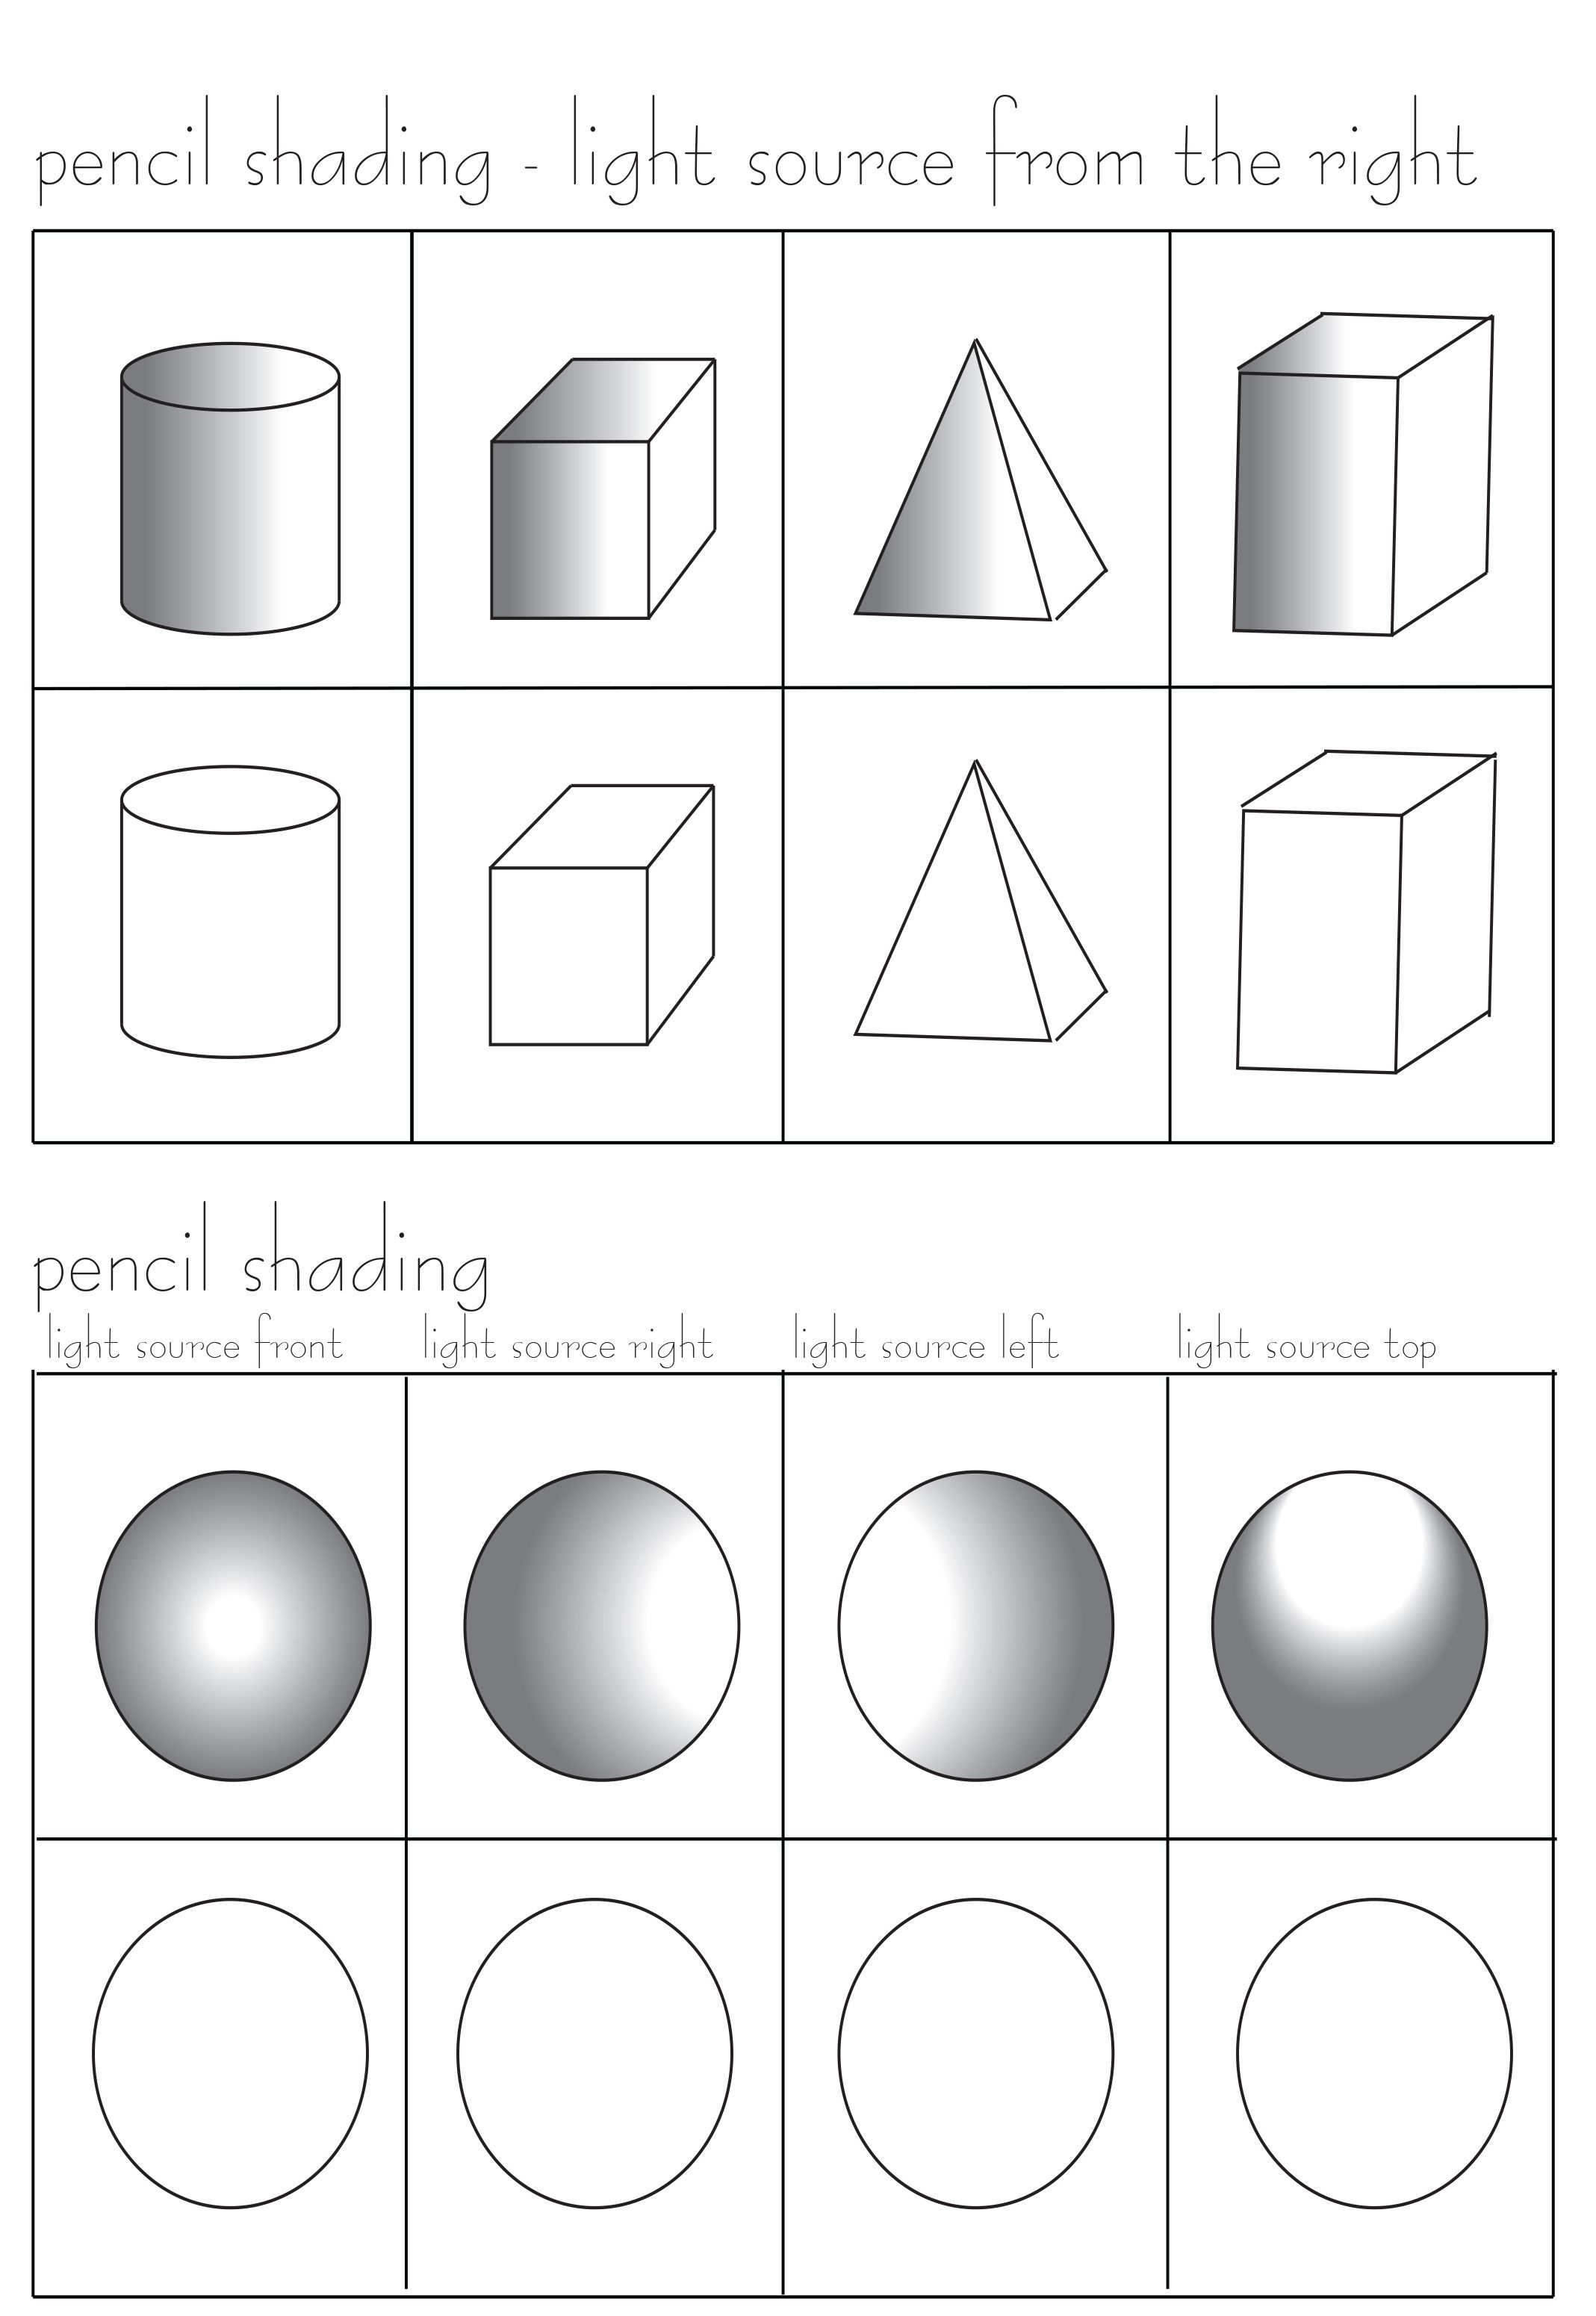 Pencil Shading Worksheet Free At